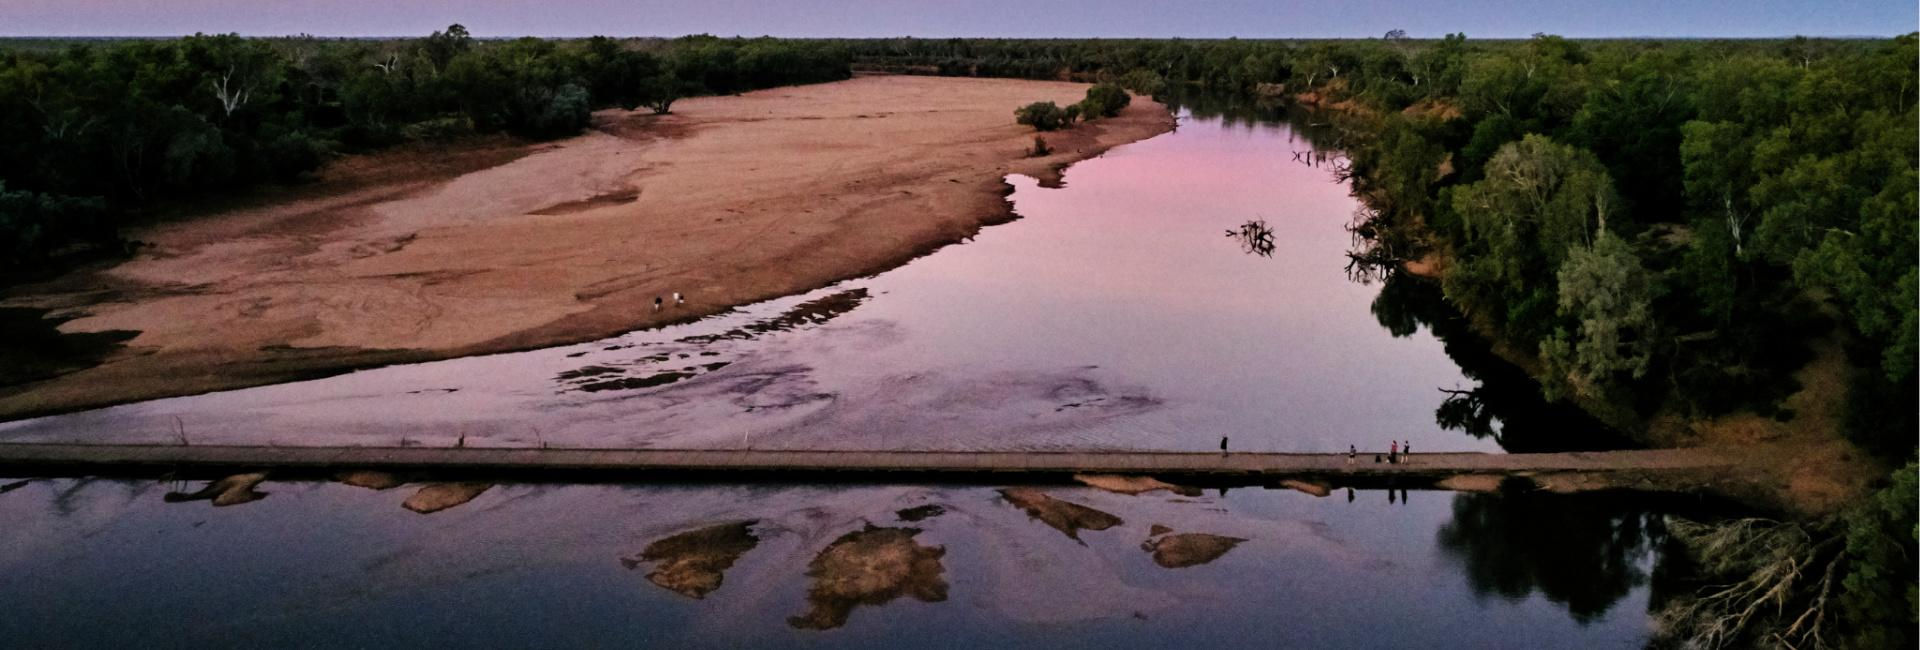 Old River Crossing at Fitzroy Crossing, in the Kimberley region of Western Australia. Image: Tourism WA